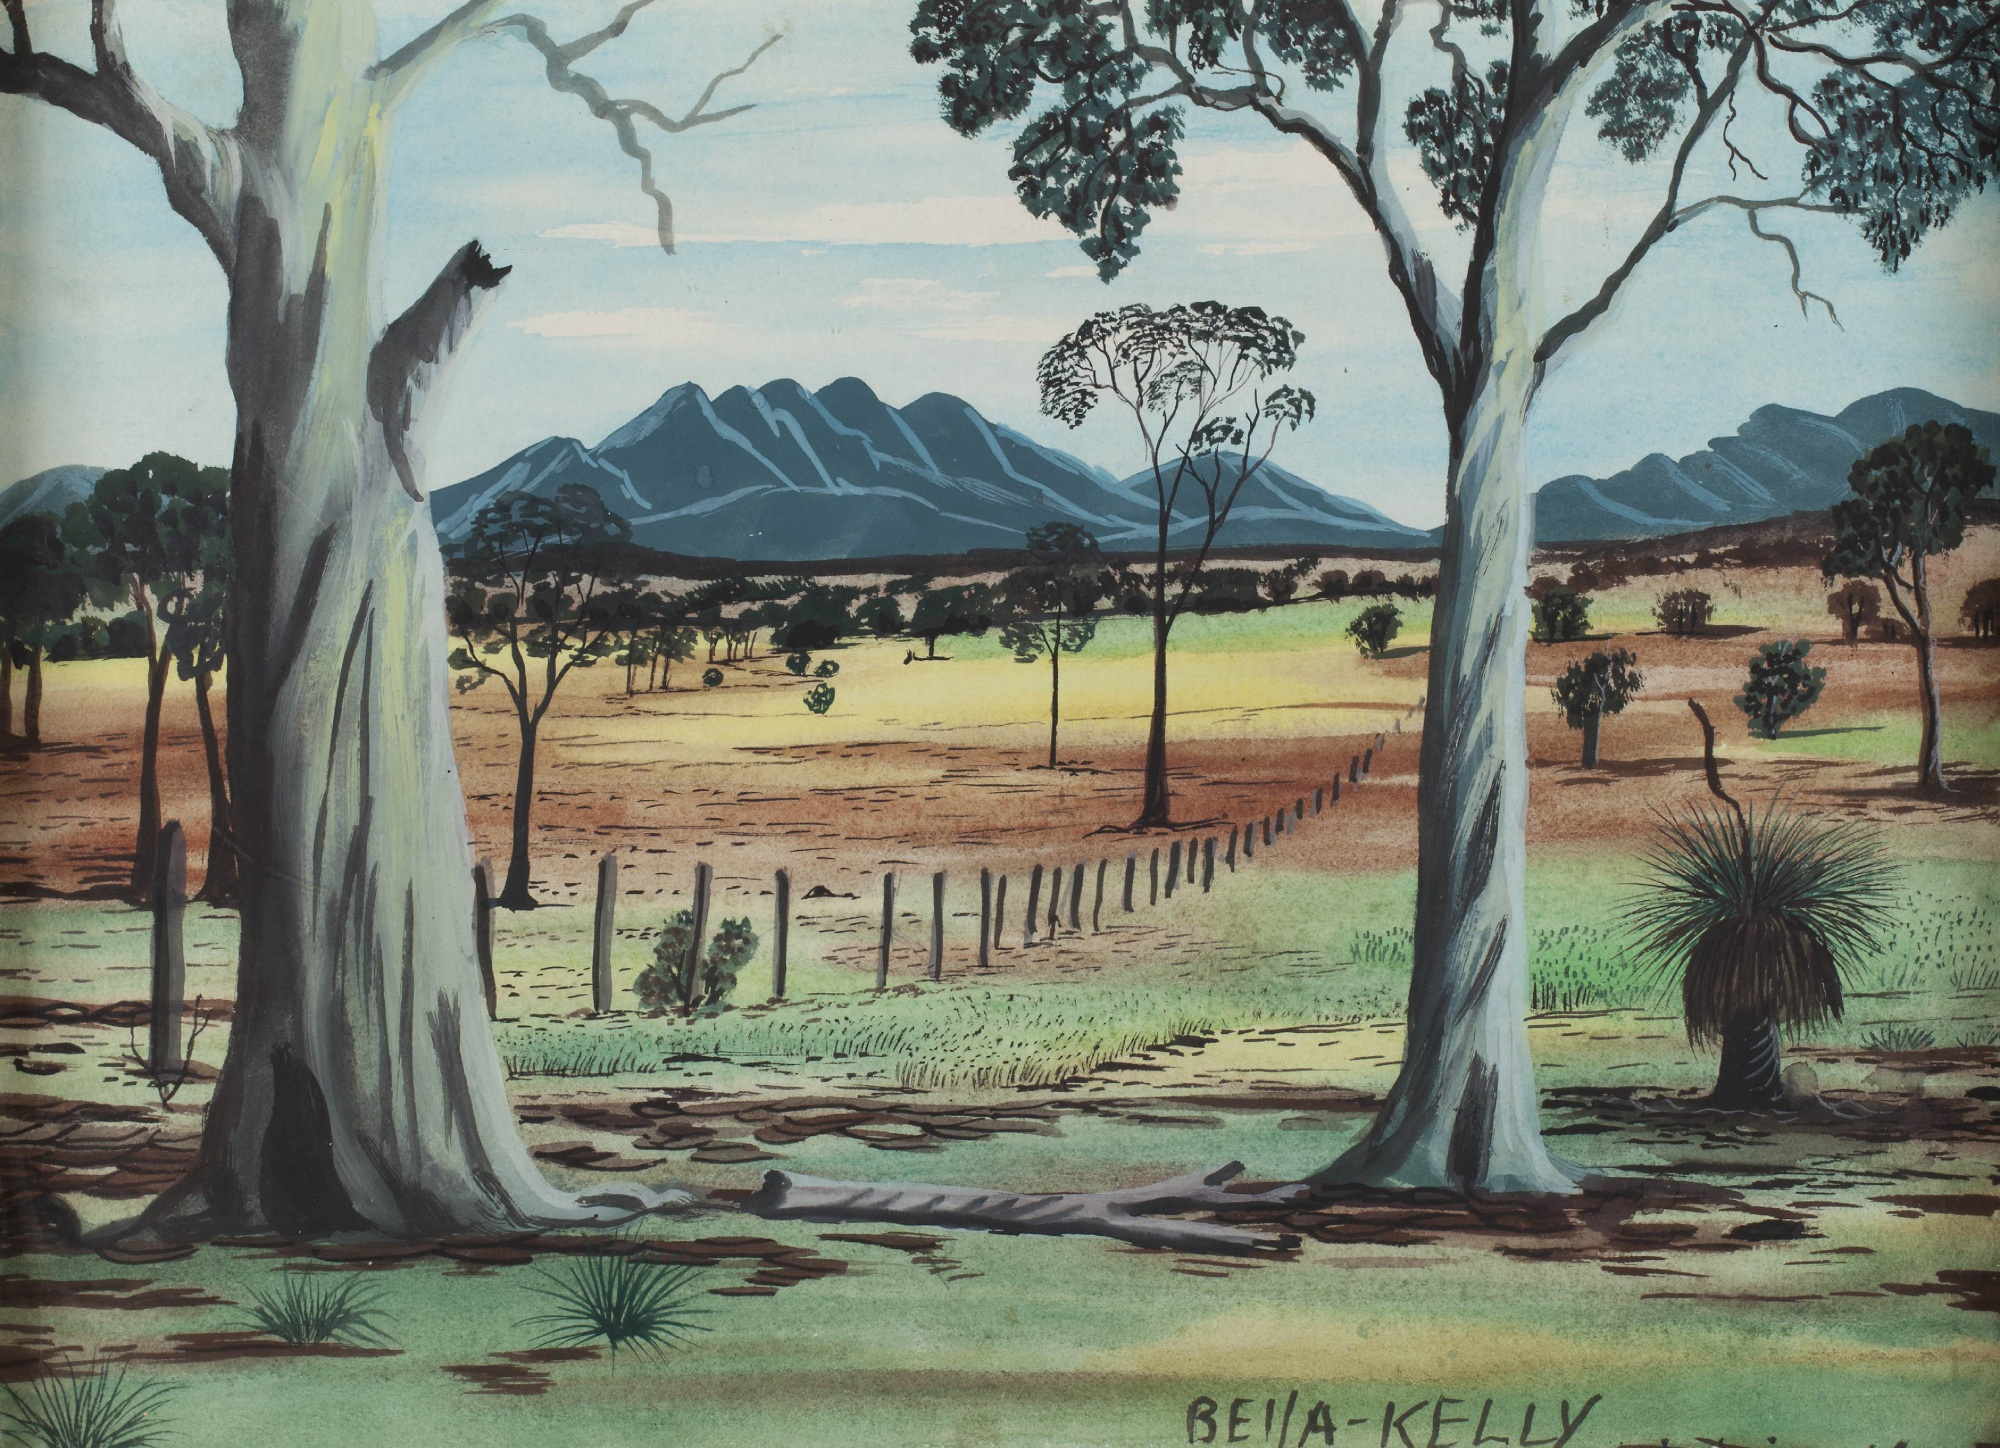 Bella Kelly Retrospective exhibition on at John Curtin Gallery until August 21